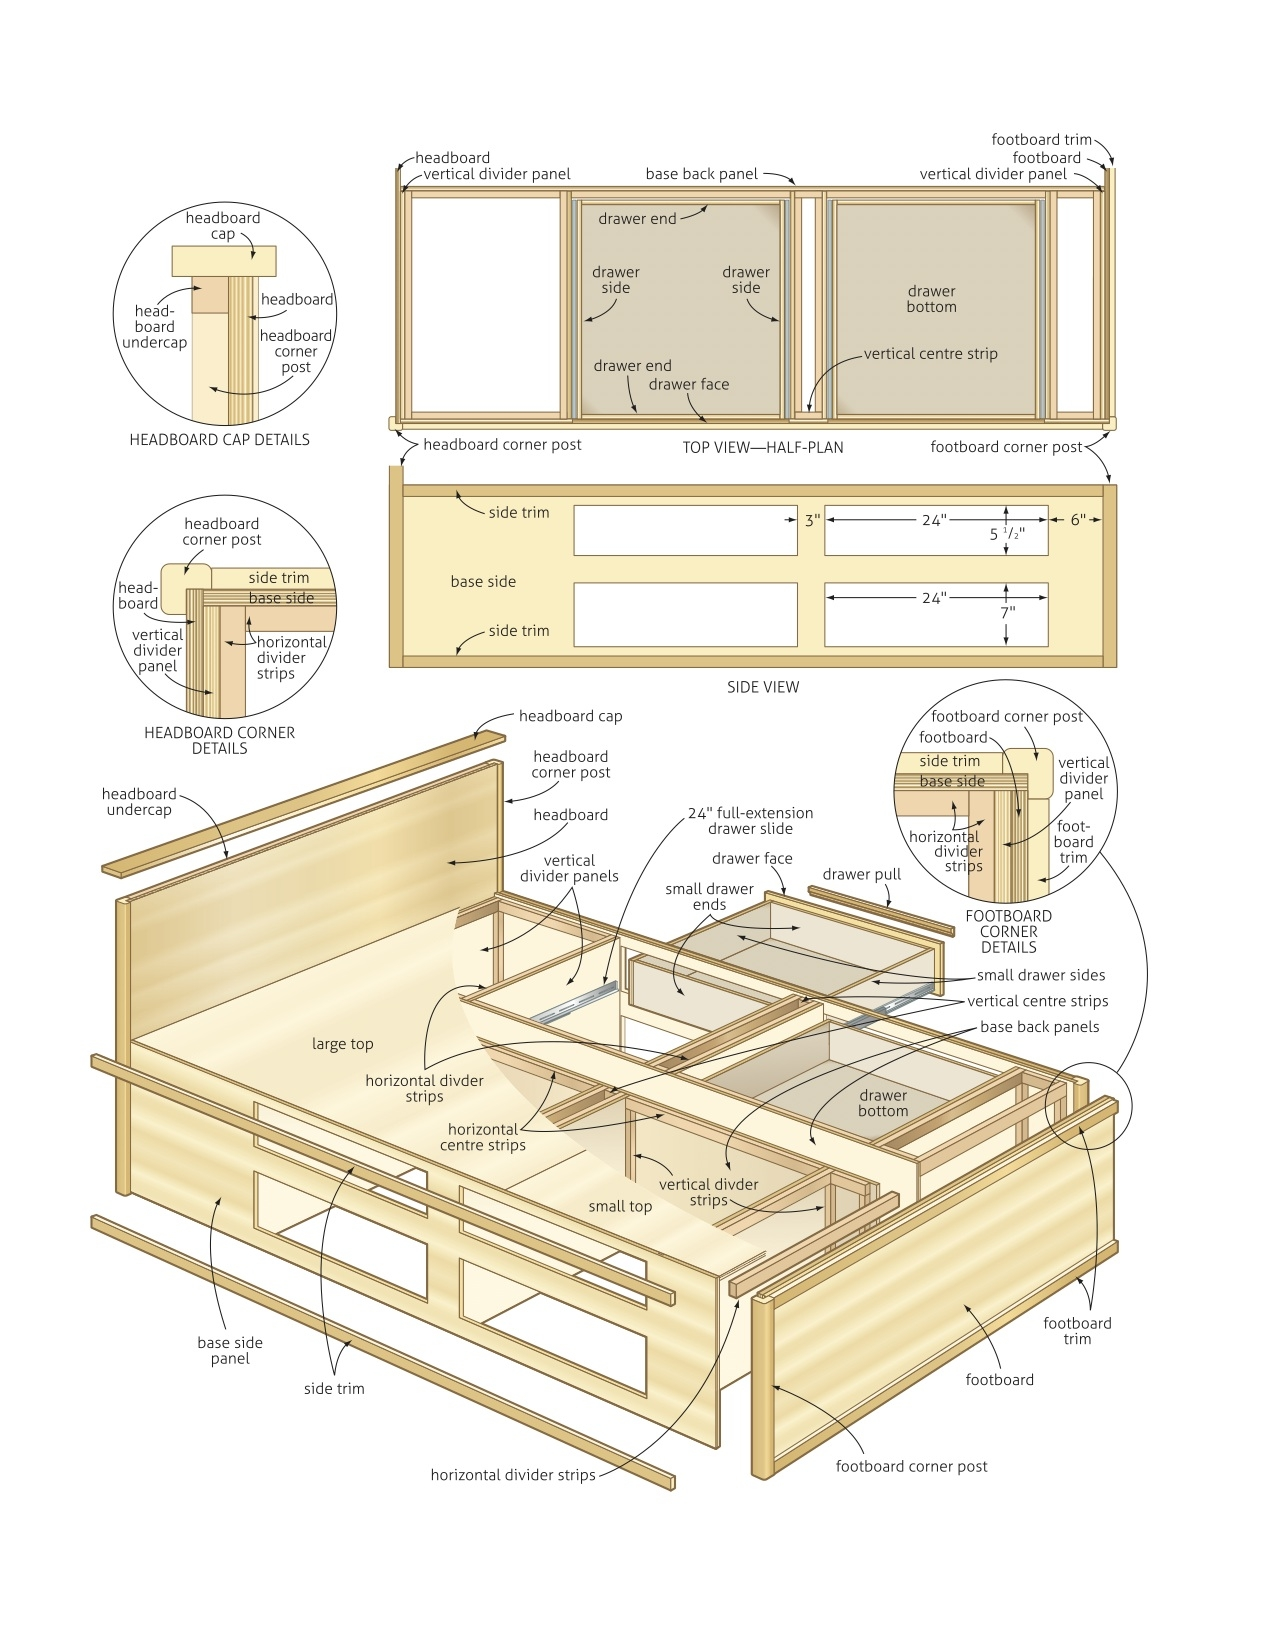 Queen Size Platform Bed Frame With Storage Plansbuild a bed with storage canadian home workshop ideas